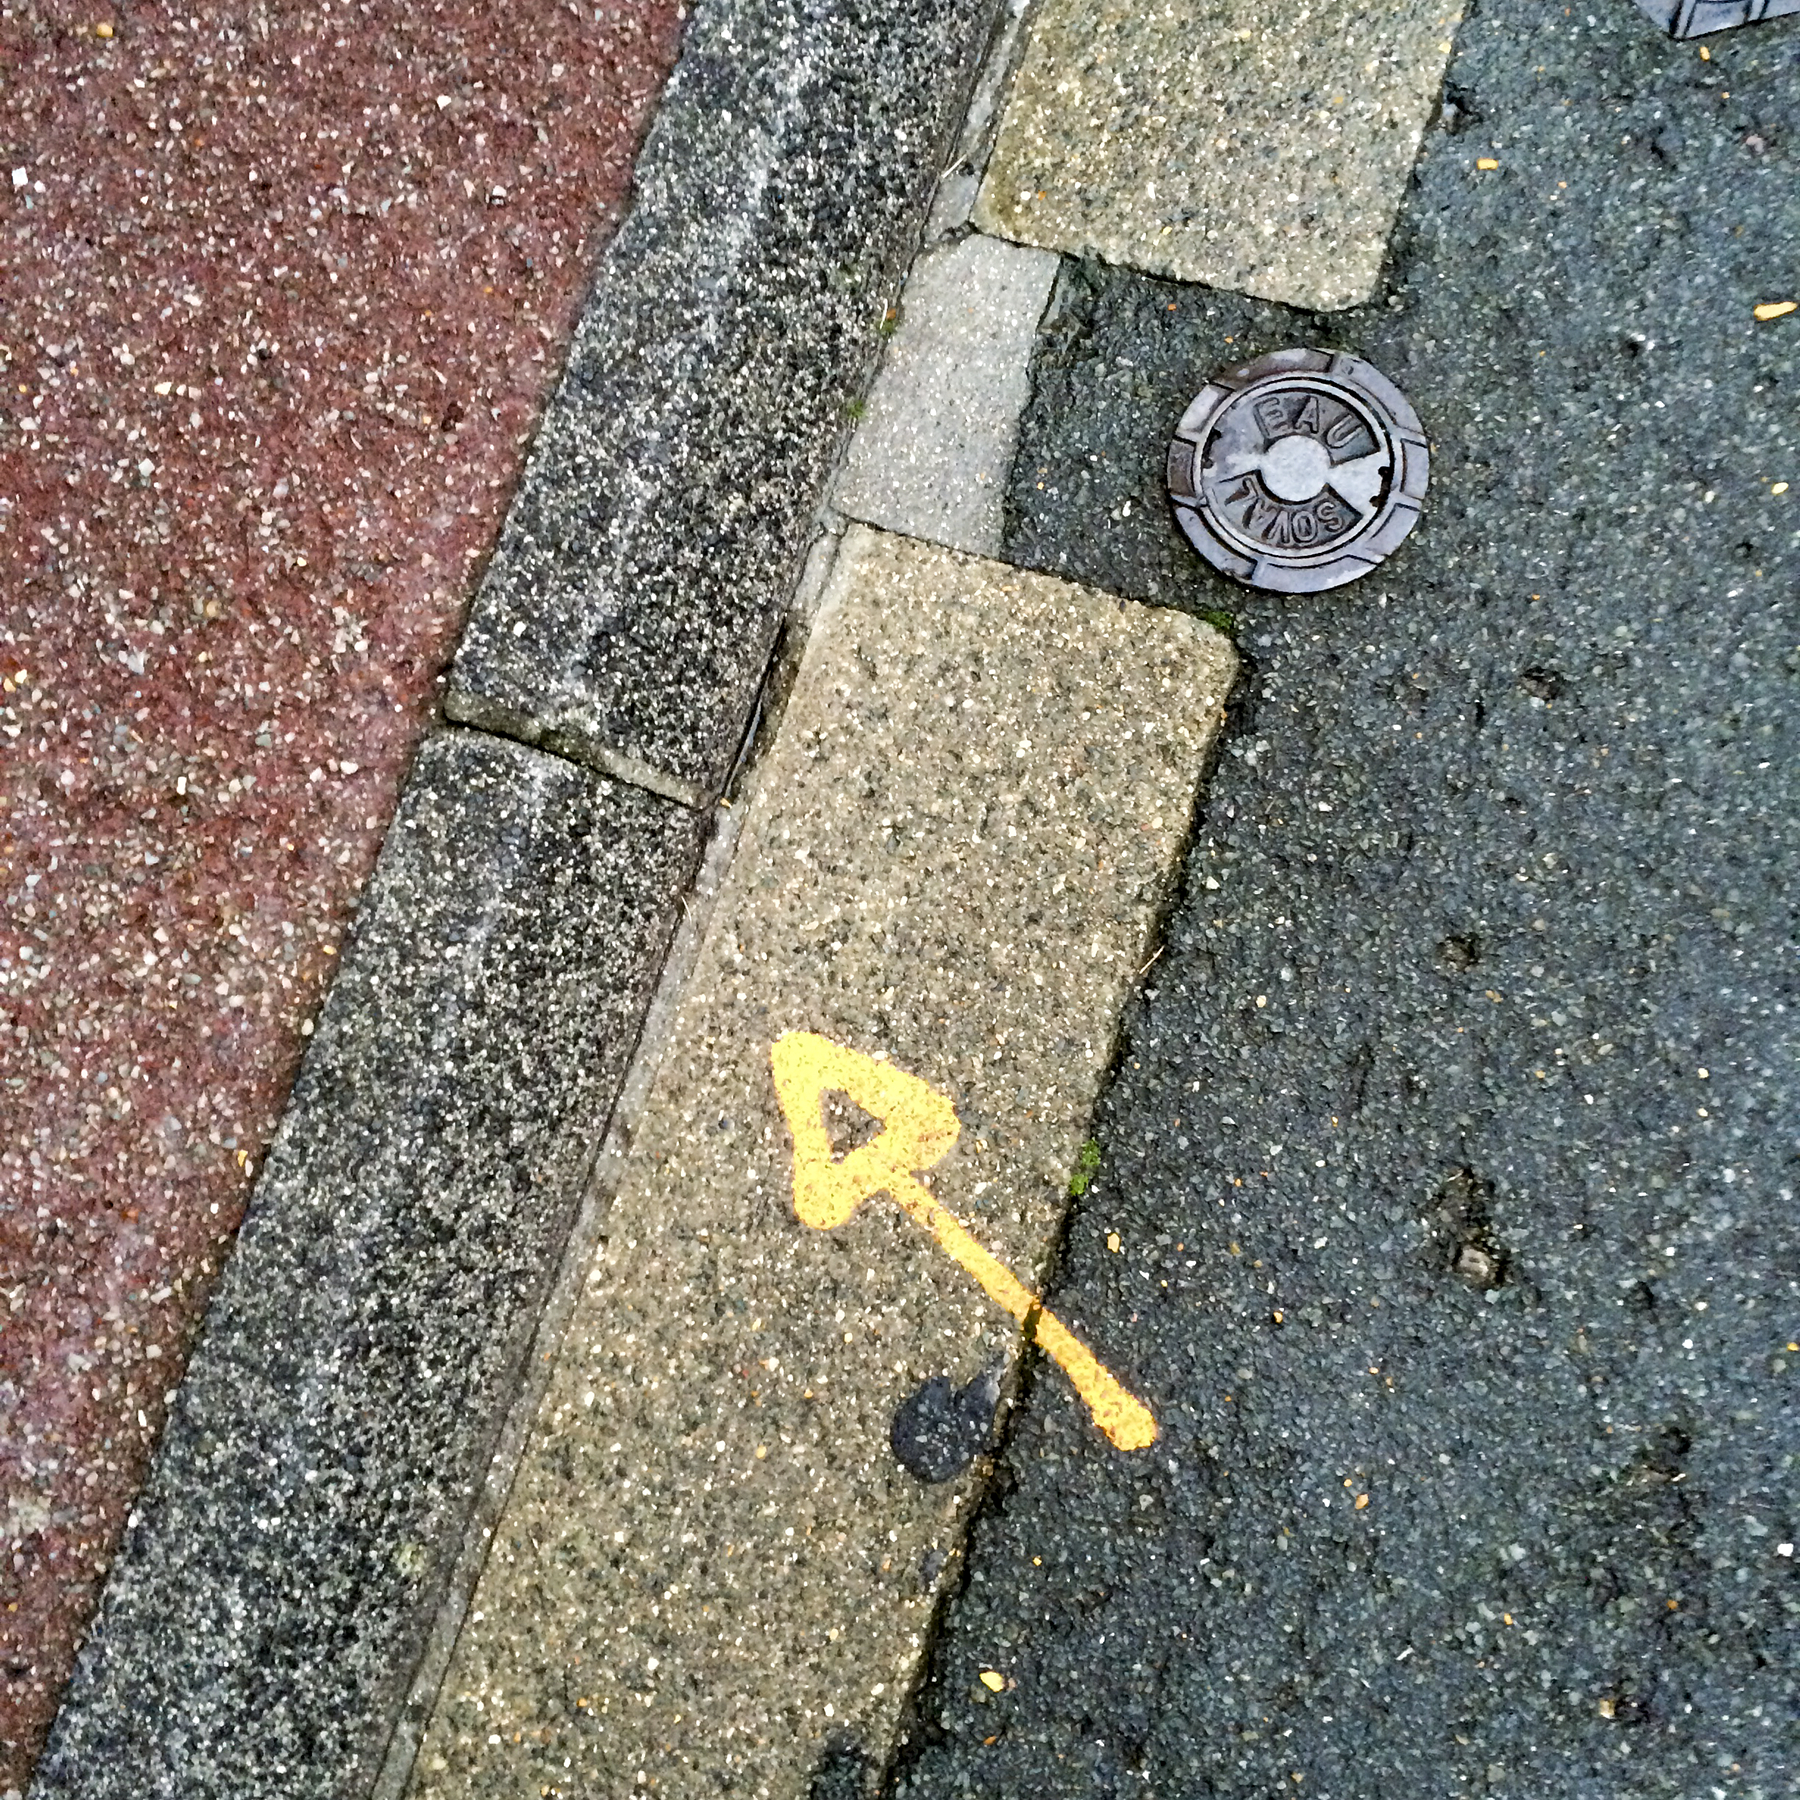 2nd of 6 placeholder images: yellow arrow spraypainted on pavement